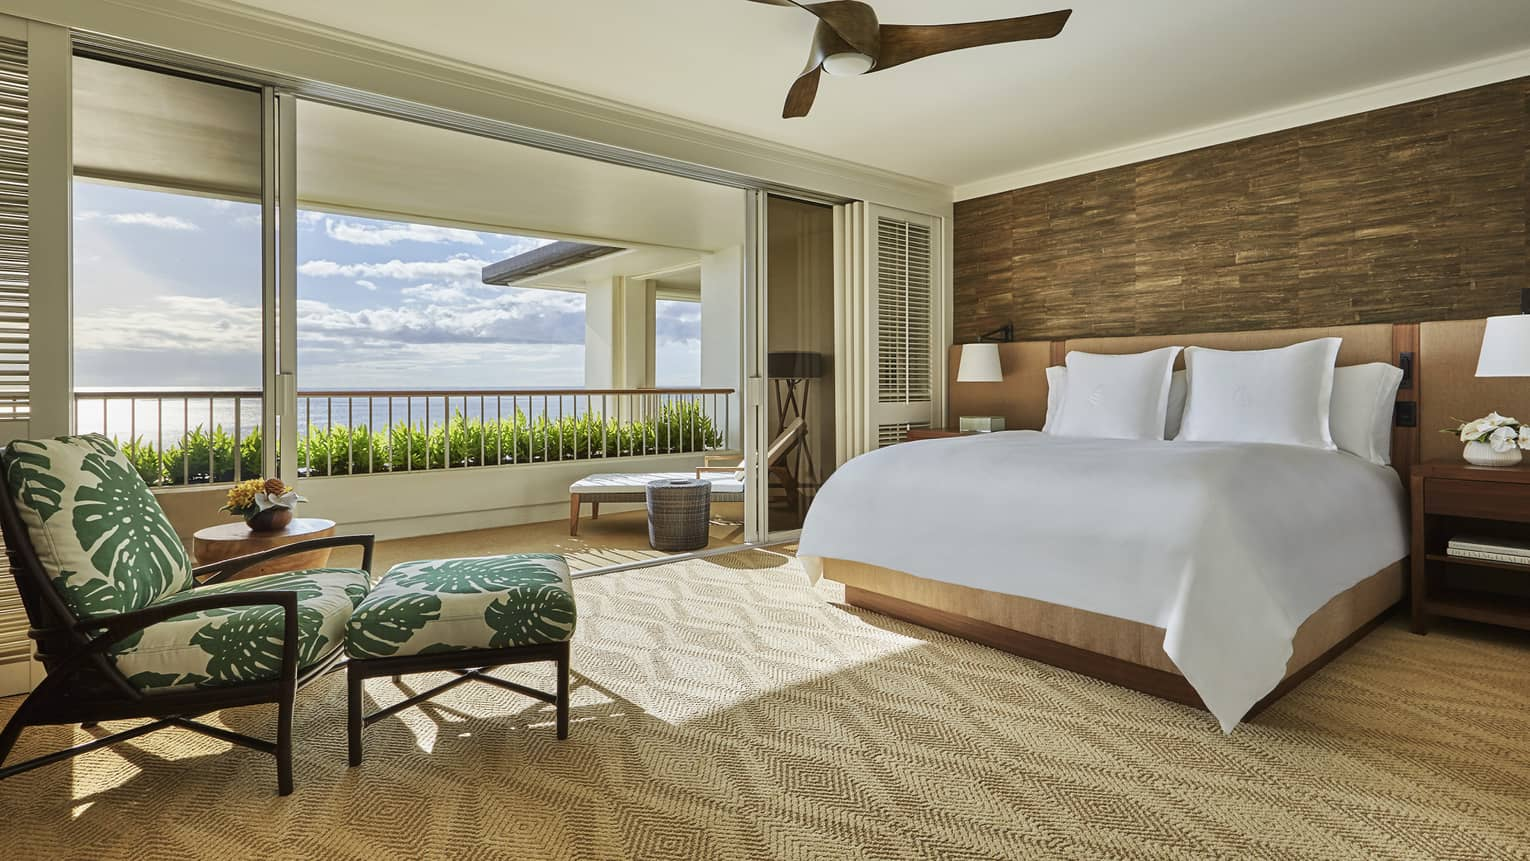 Hotel room bed and tropical print armchair by open air wall to patio, ocean view